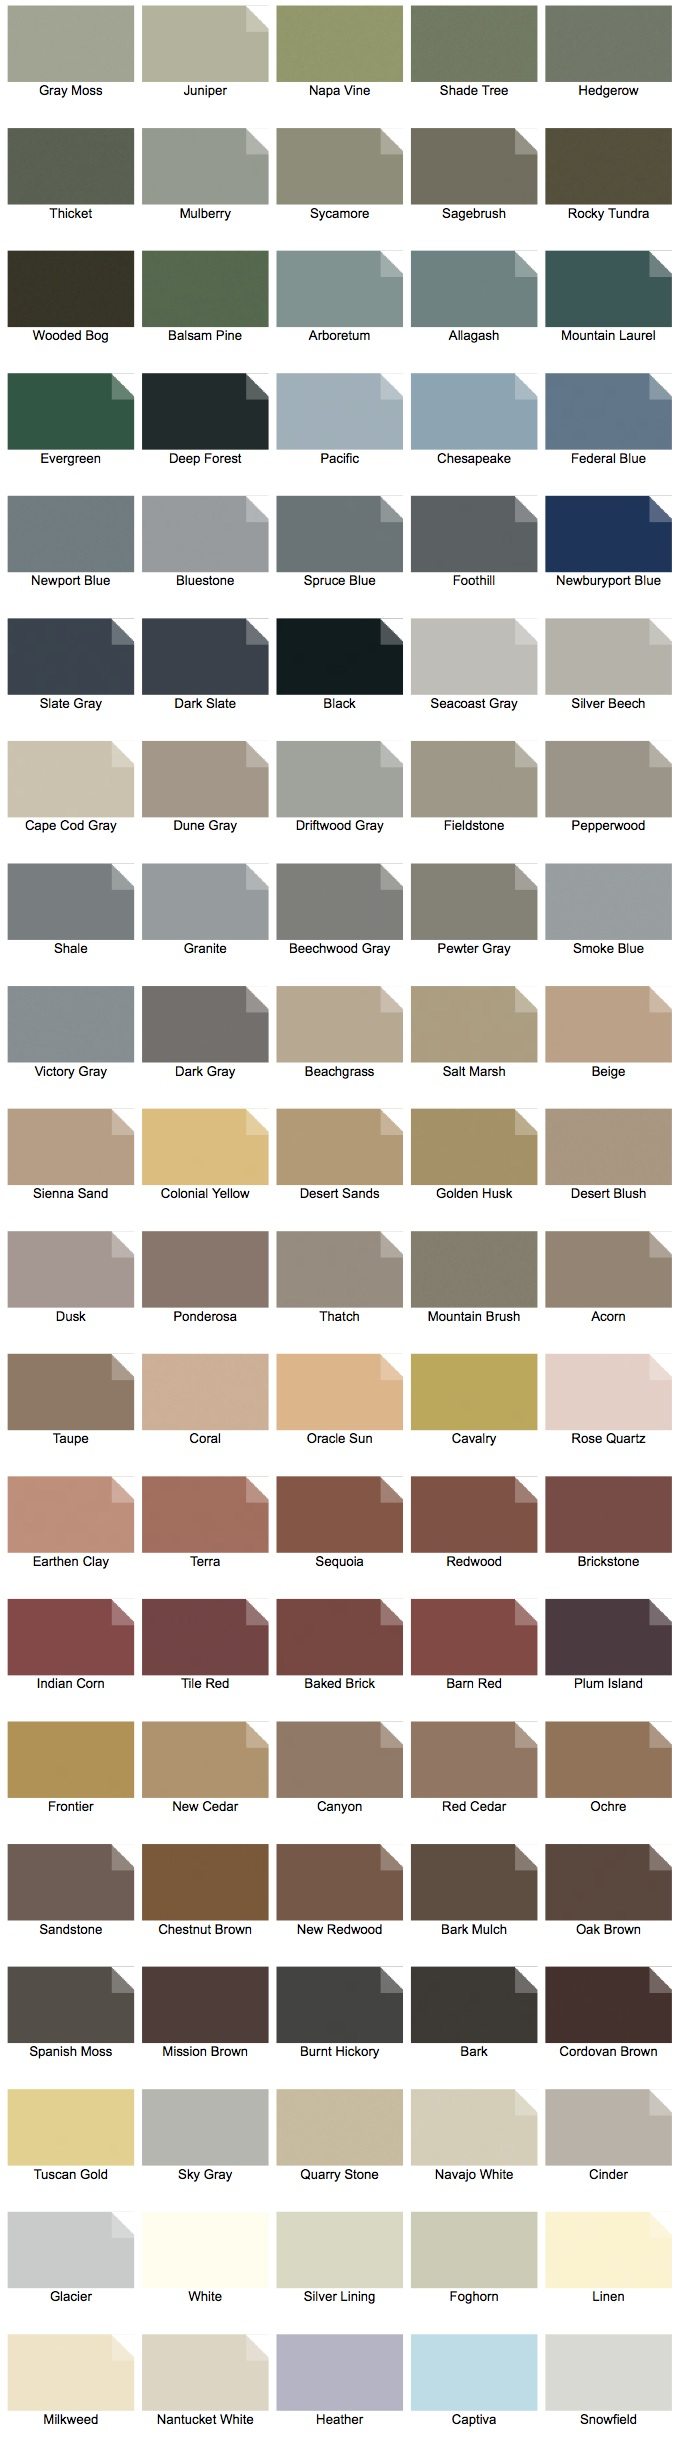 Deck Stain Colors The Southern Porch Company Sunrooms